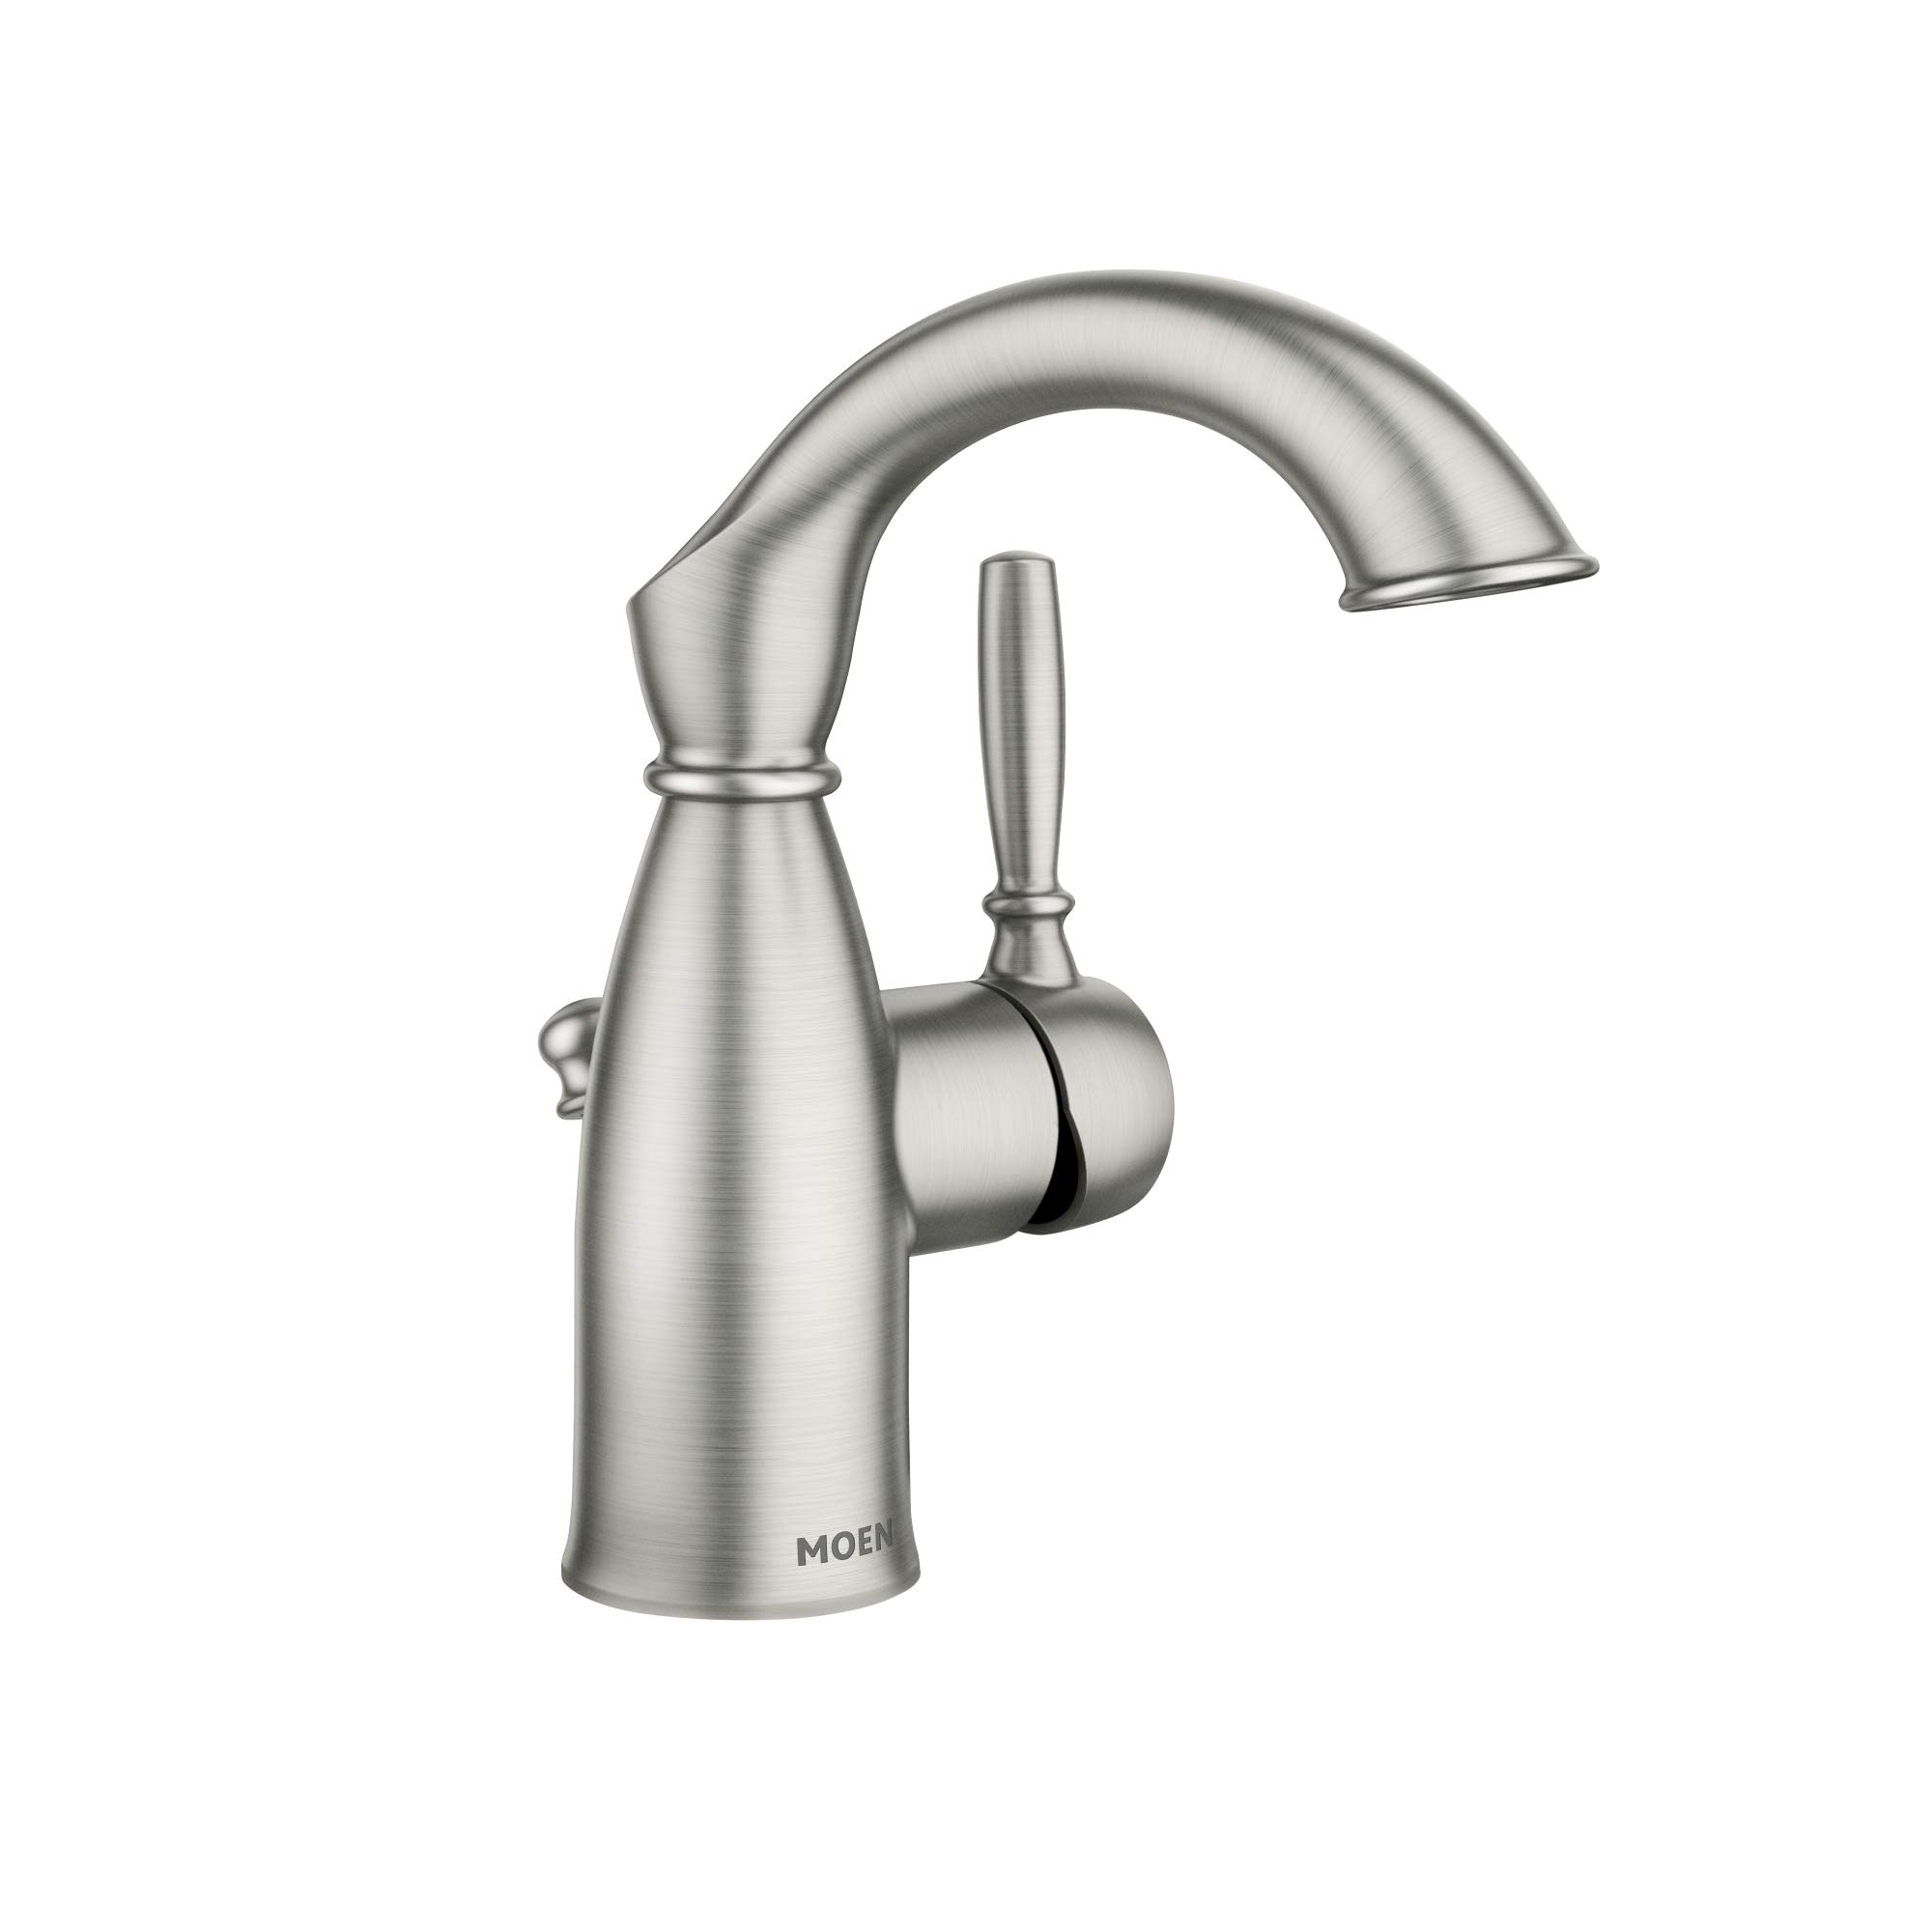 Moen 84144SRN Sarona One-Handle Single Hole Rustic Farmhouse Bathroom Sink Faucet with Optional Deckplate, Spot Resist Brushed Nickel by Moen